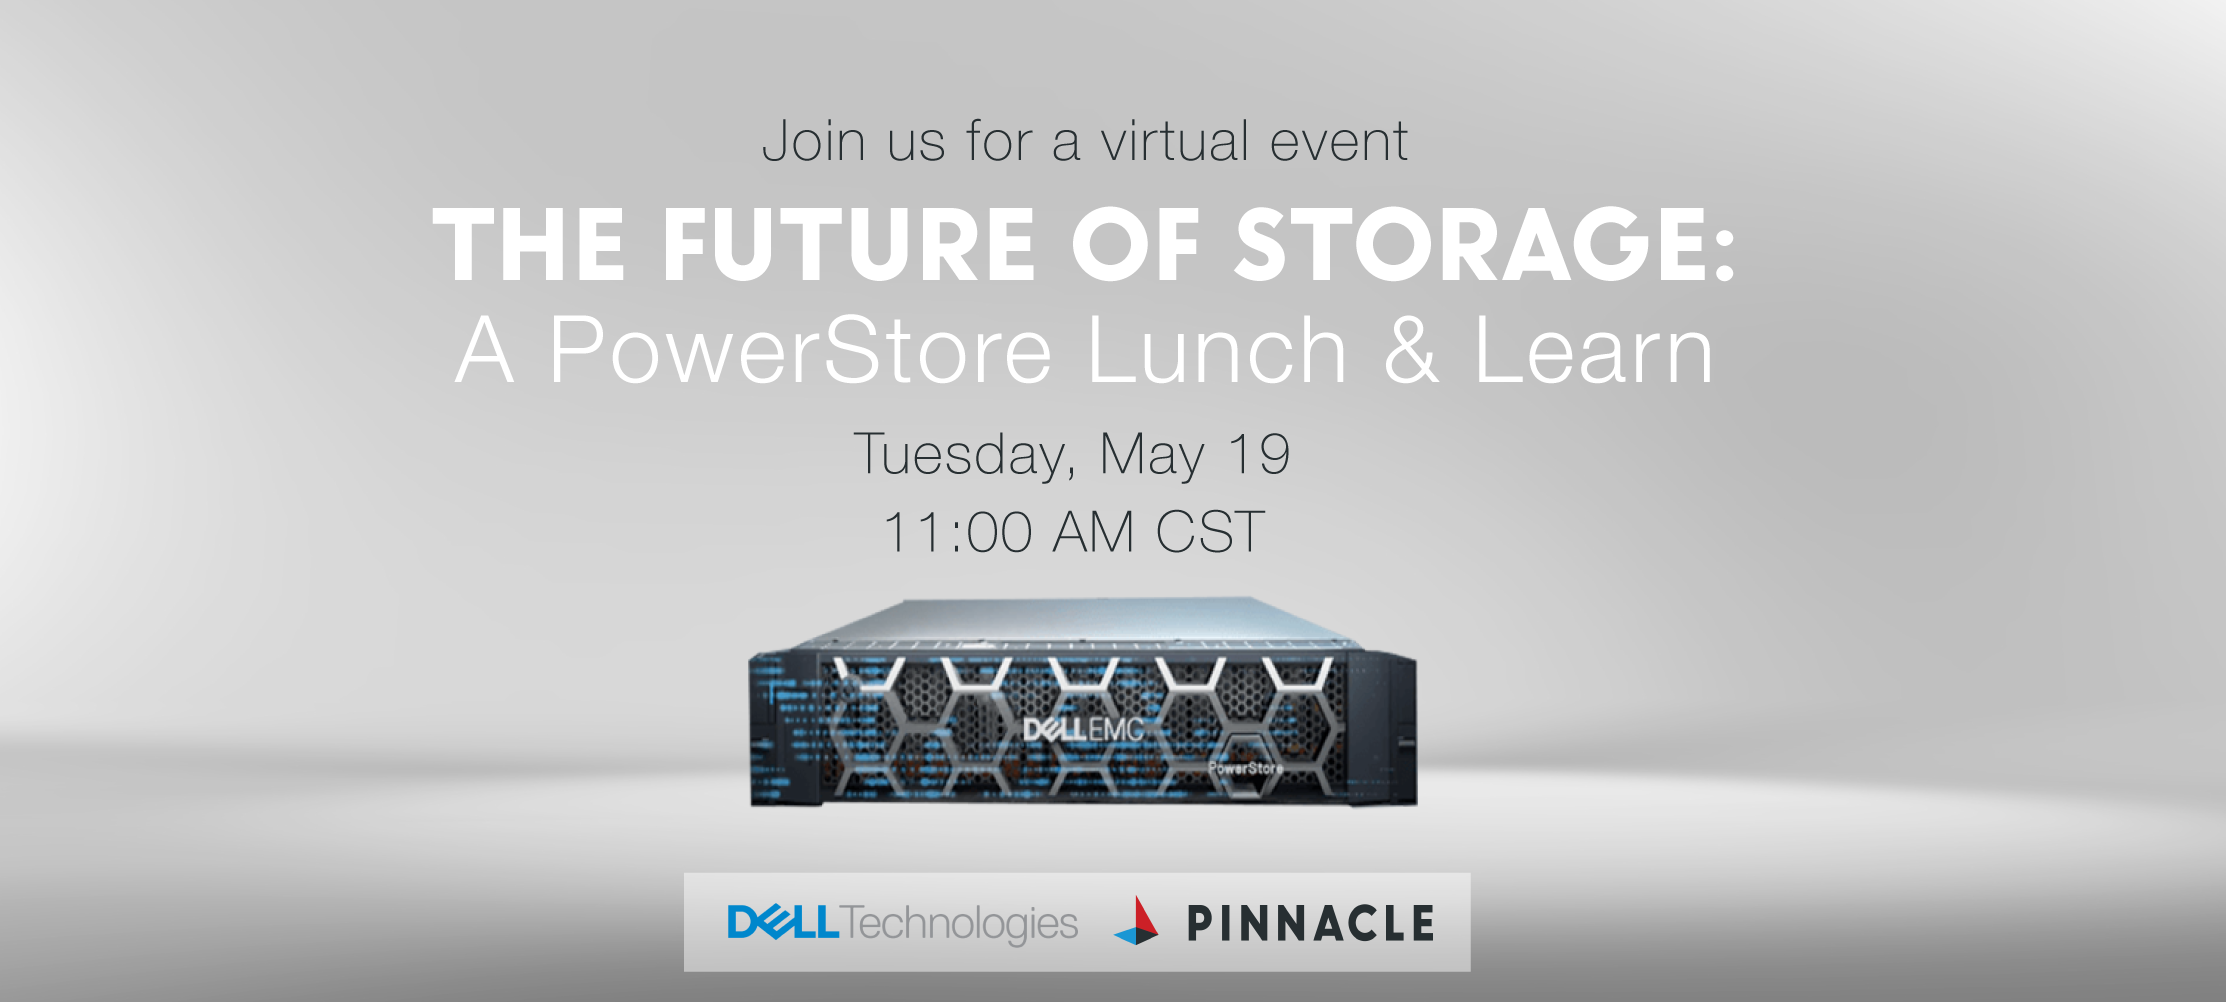 The Future of Storage: PowerStore Lunch & Learn